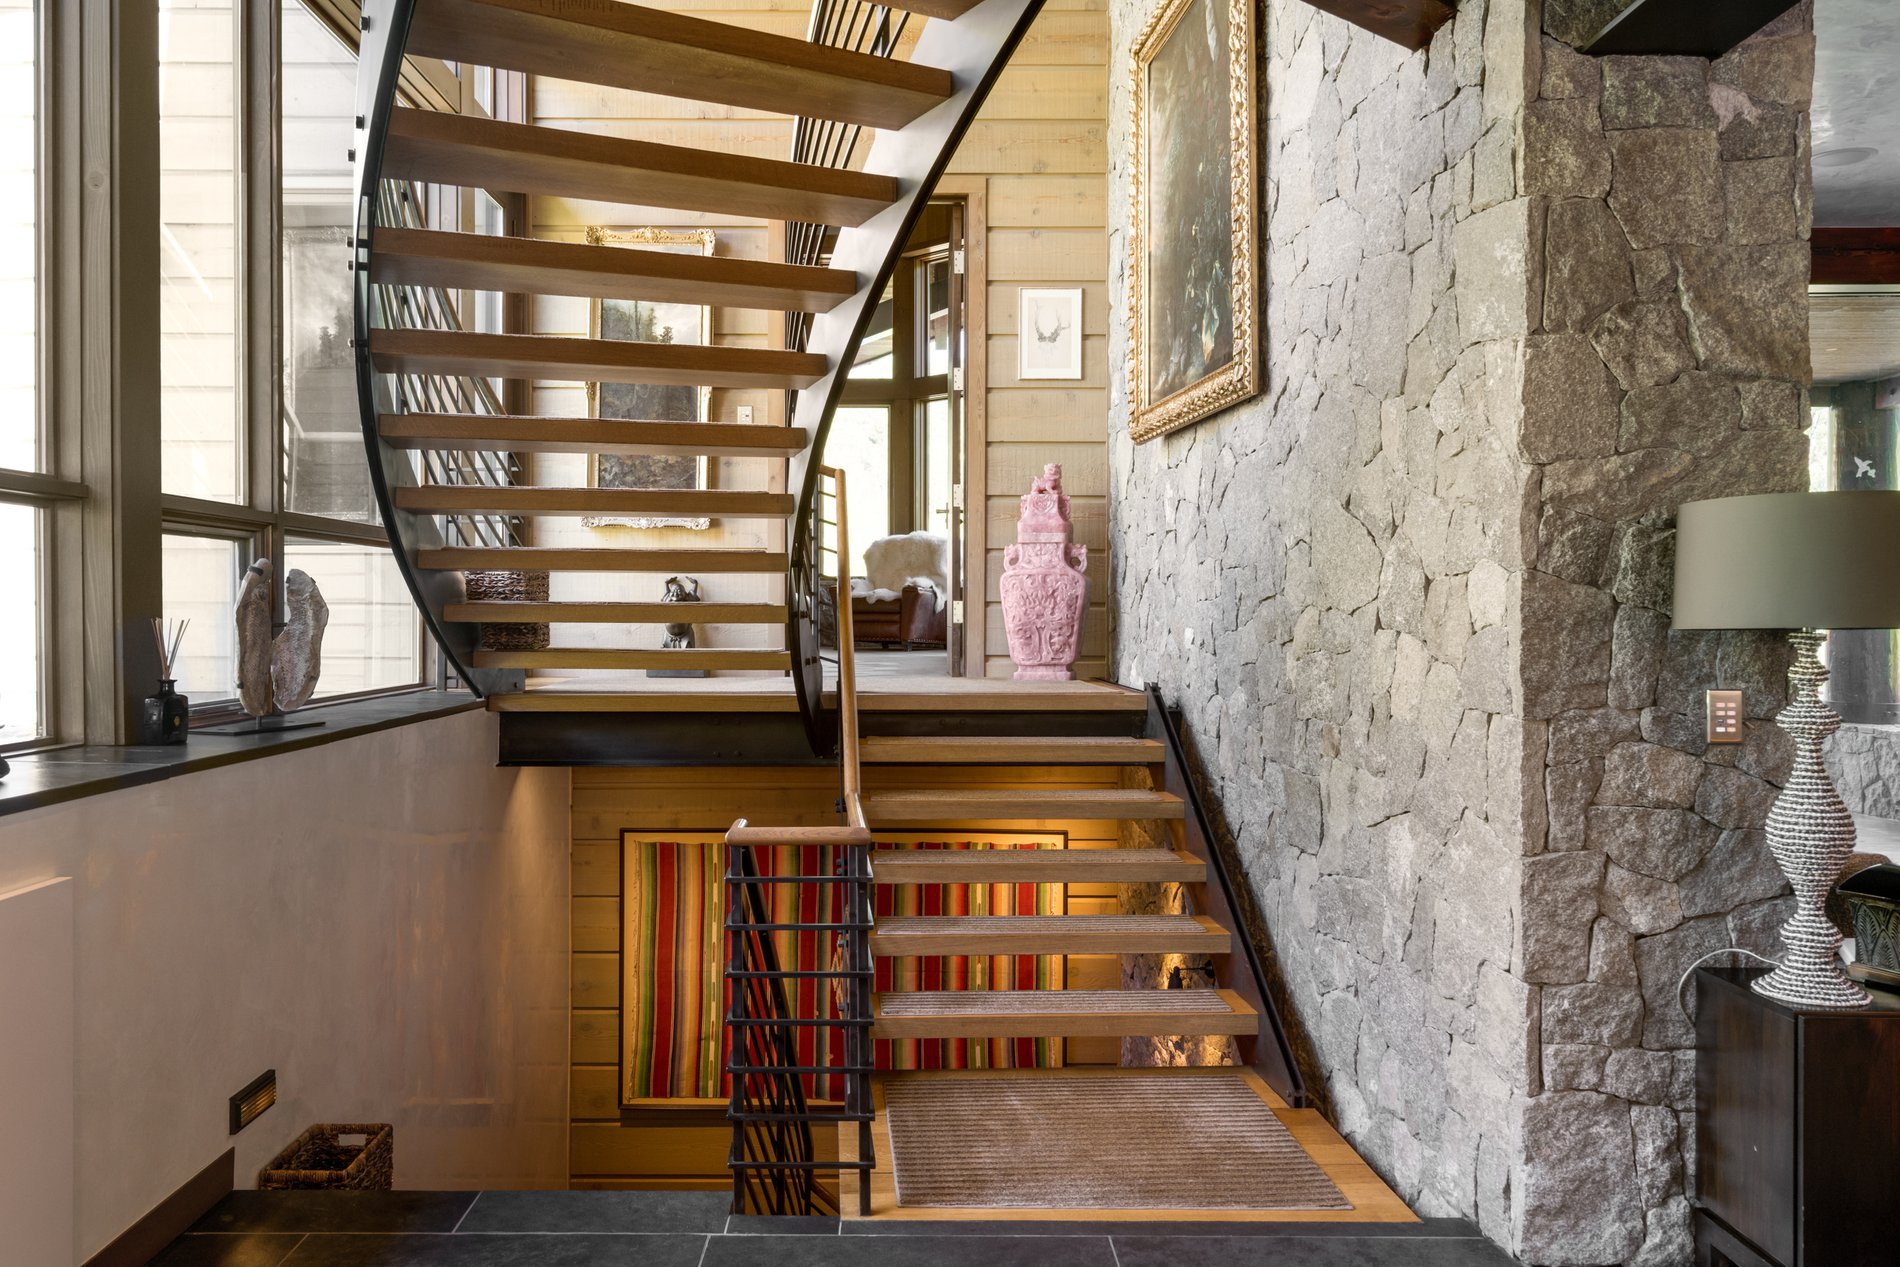 Because this is a modern rustic home it has an open riser stair design. It's been custom built to match the homes aesthetic.